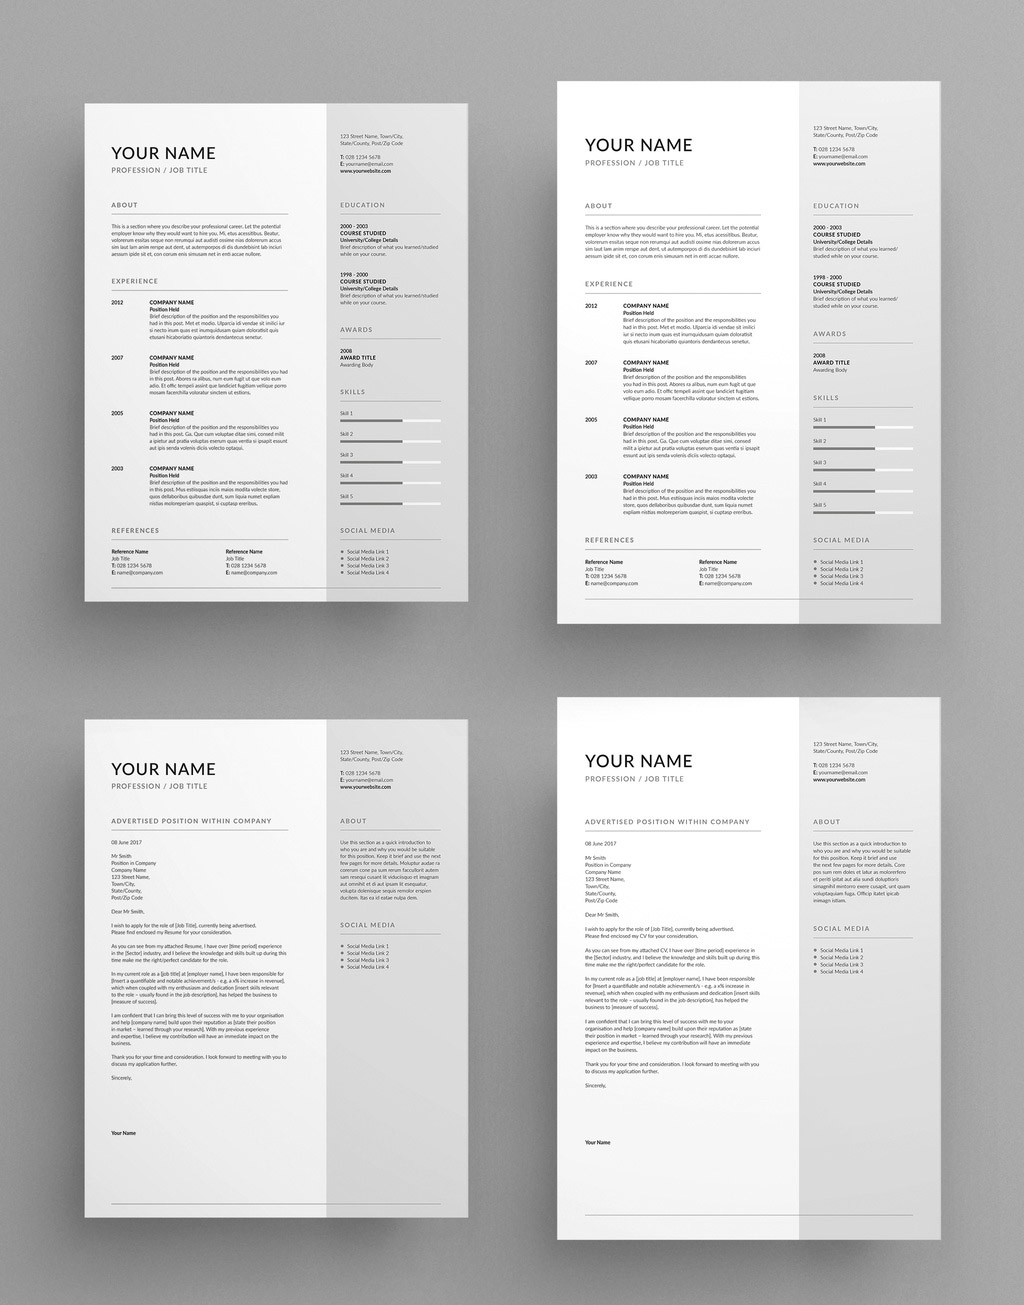 Four Outstanding Templates of Application Documents for Creatives